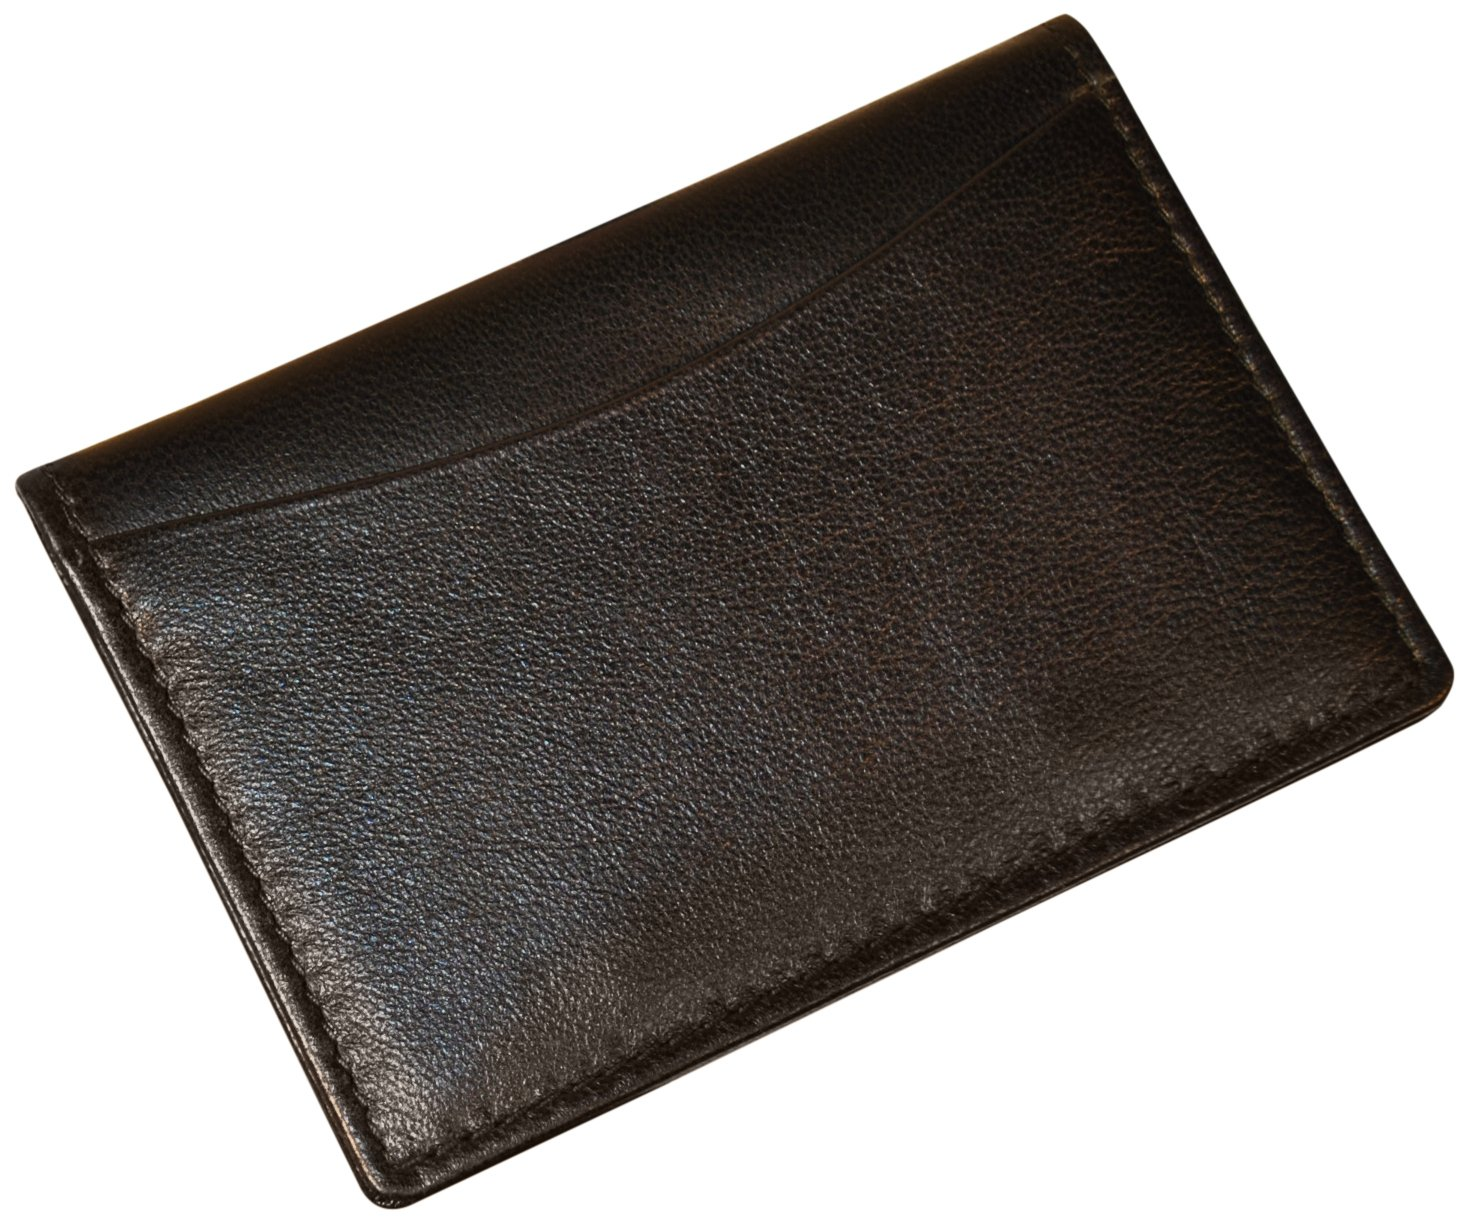 Budd Leather Soft Napa Gusseted Card Case with Window Black